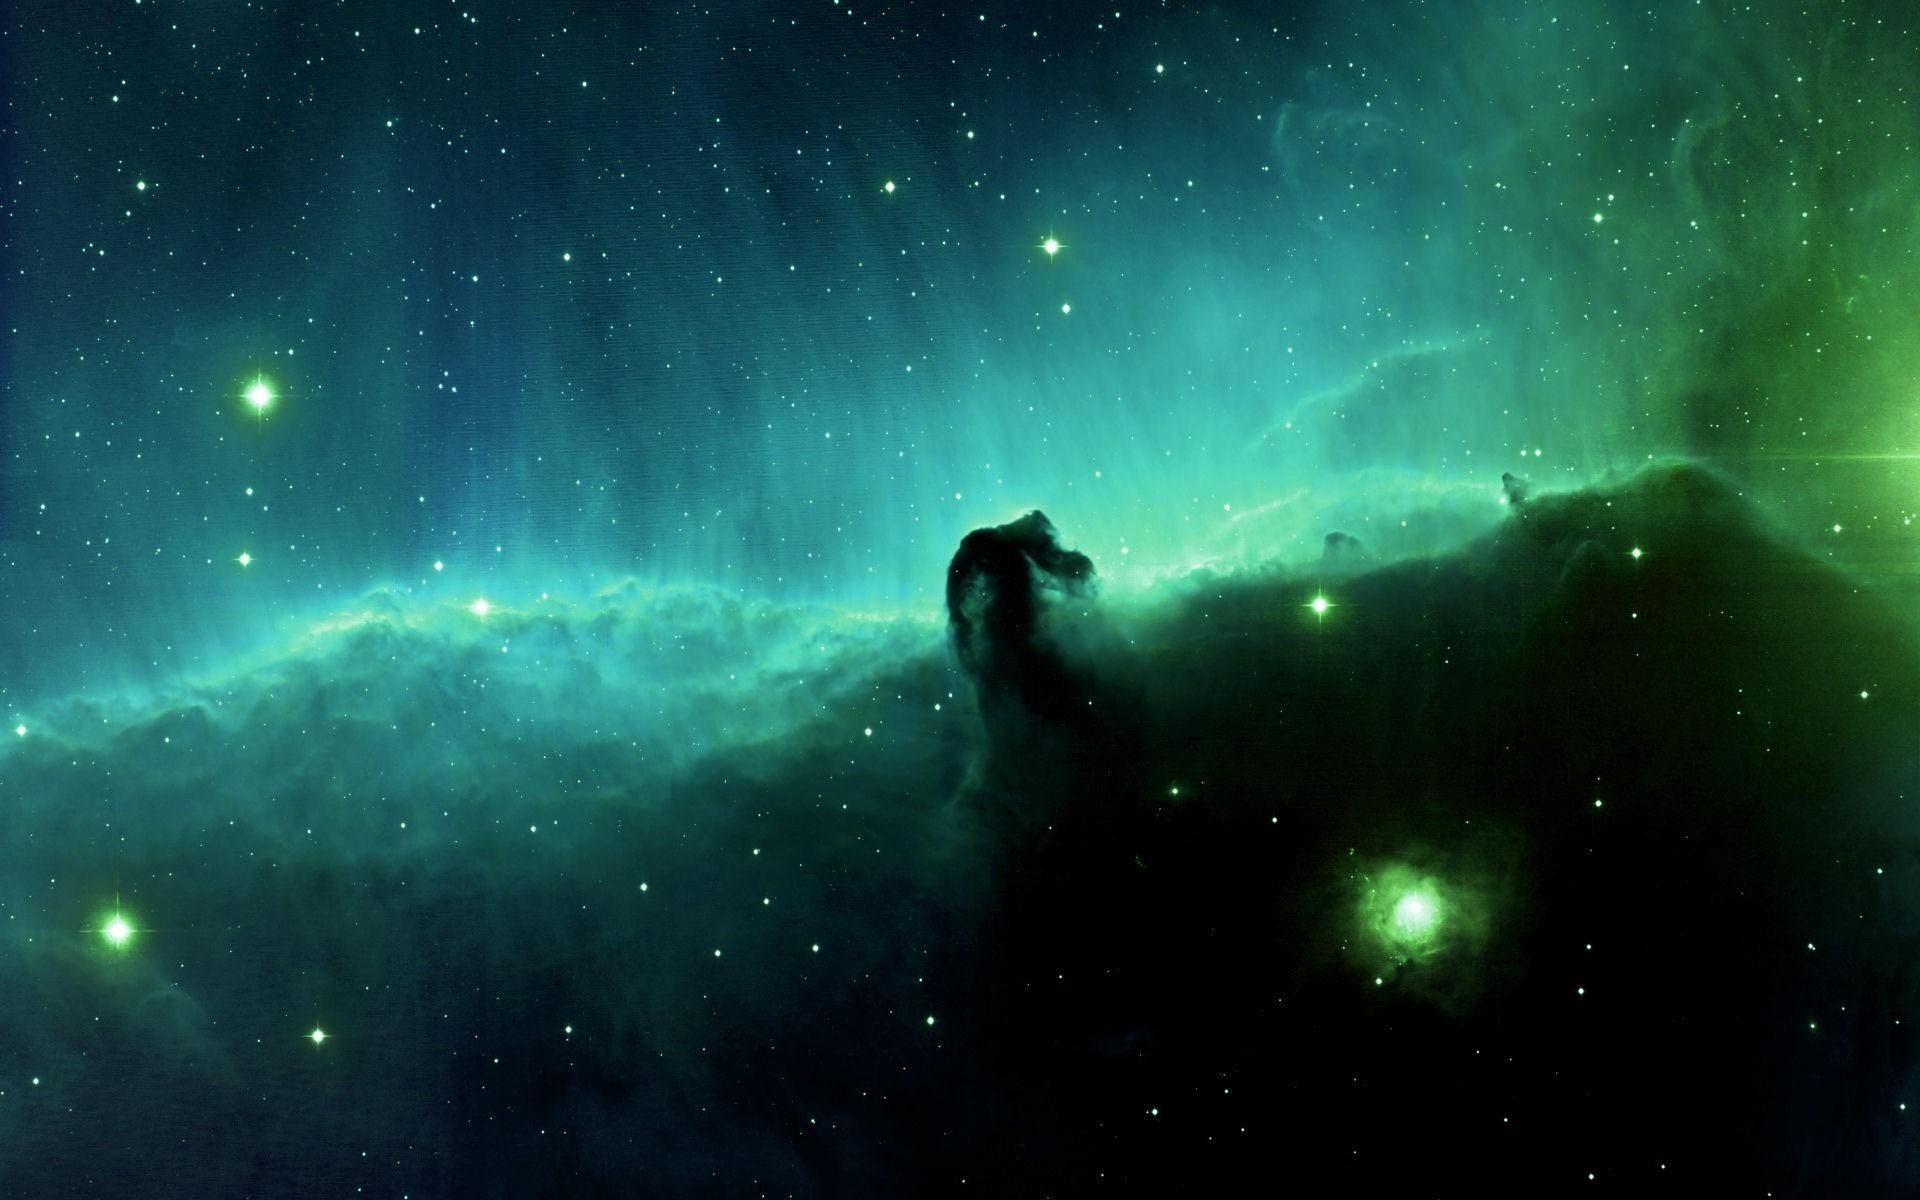 Space Nebula Horsehead nebula HD Wallpapers Download Desktop 1920x1200